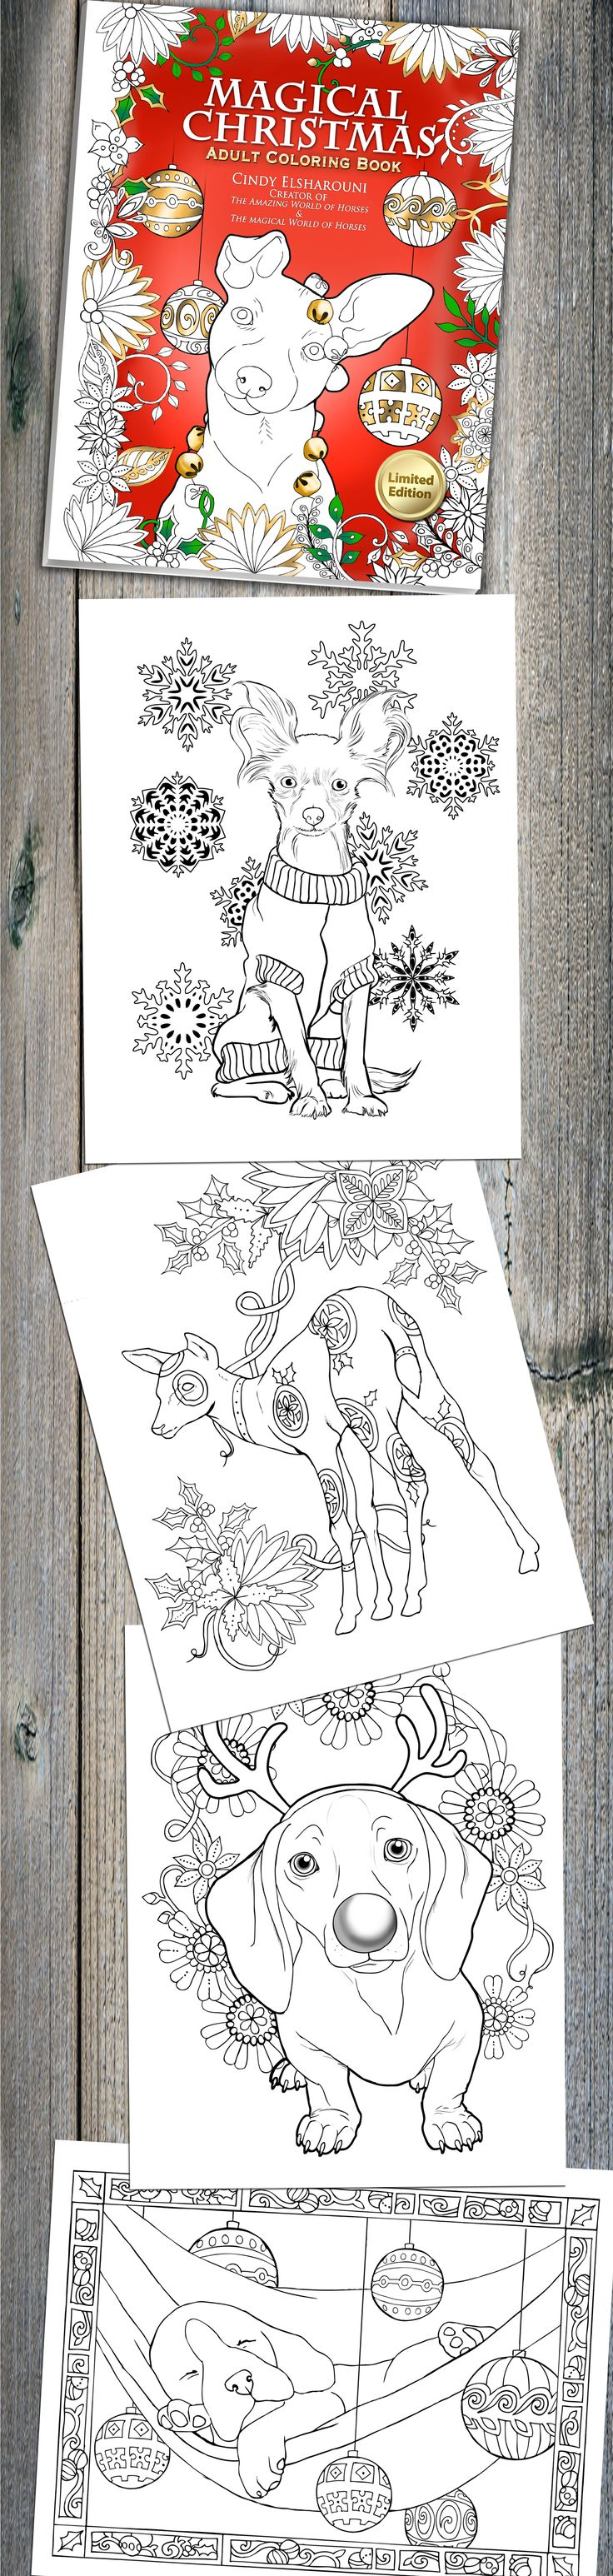 A fun magic coloring book amazon - 30 Pages Of Festive Animals To Color Magical Christmas Adult Coloring Book Is Now On